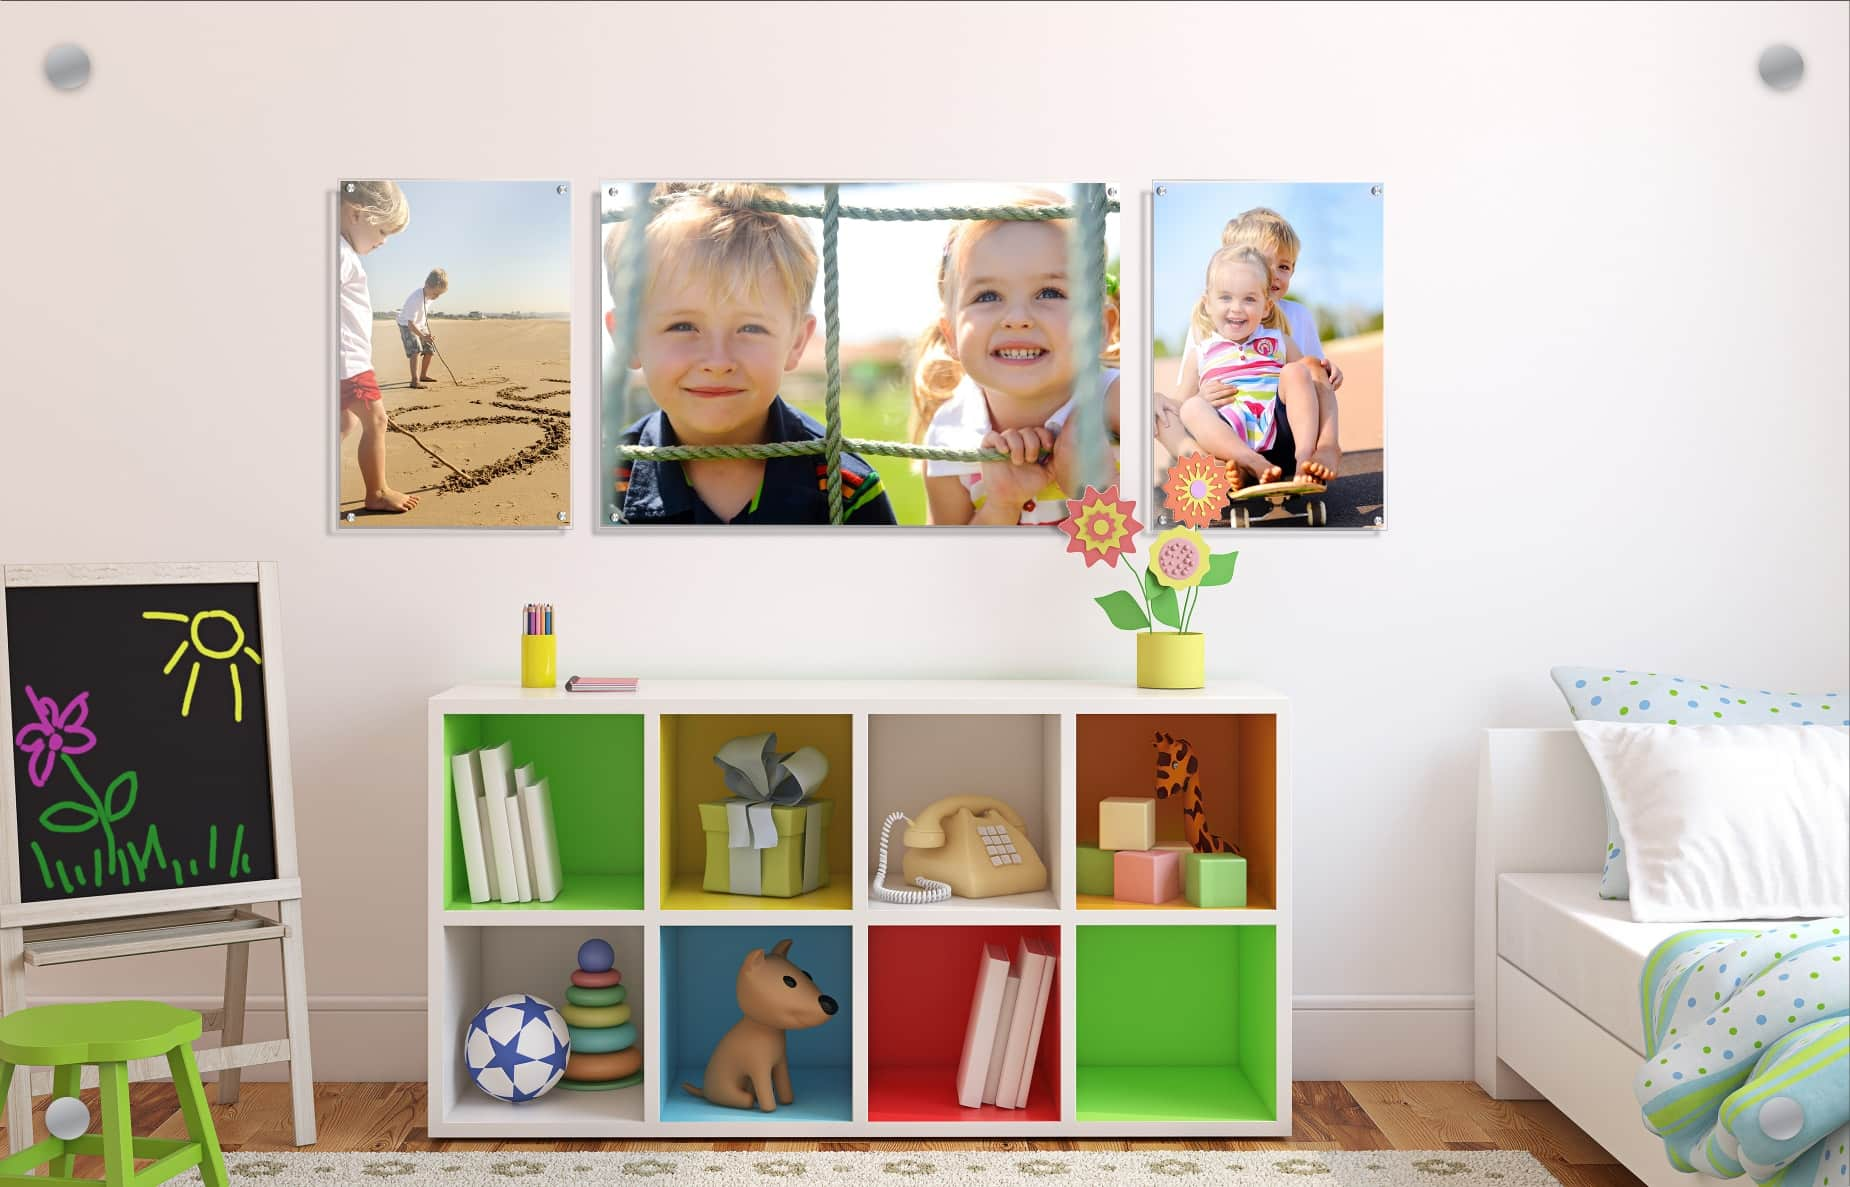 Sample image of Wallkeepers app in action. Three photos in a grid overlayed on to an interior wall.